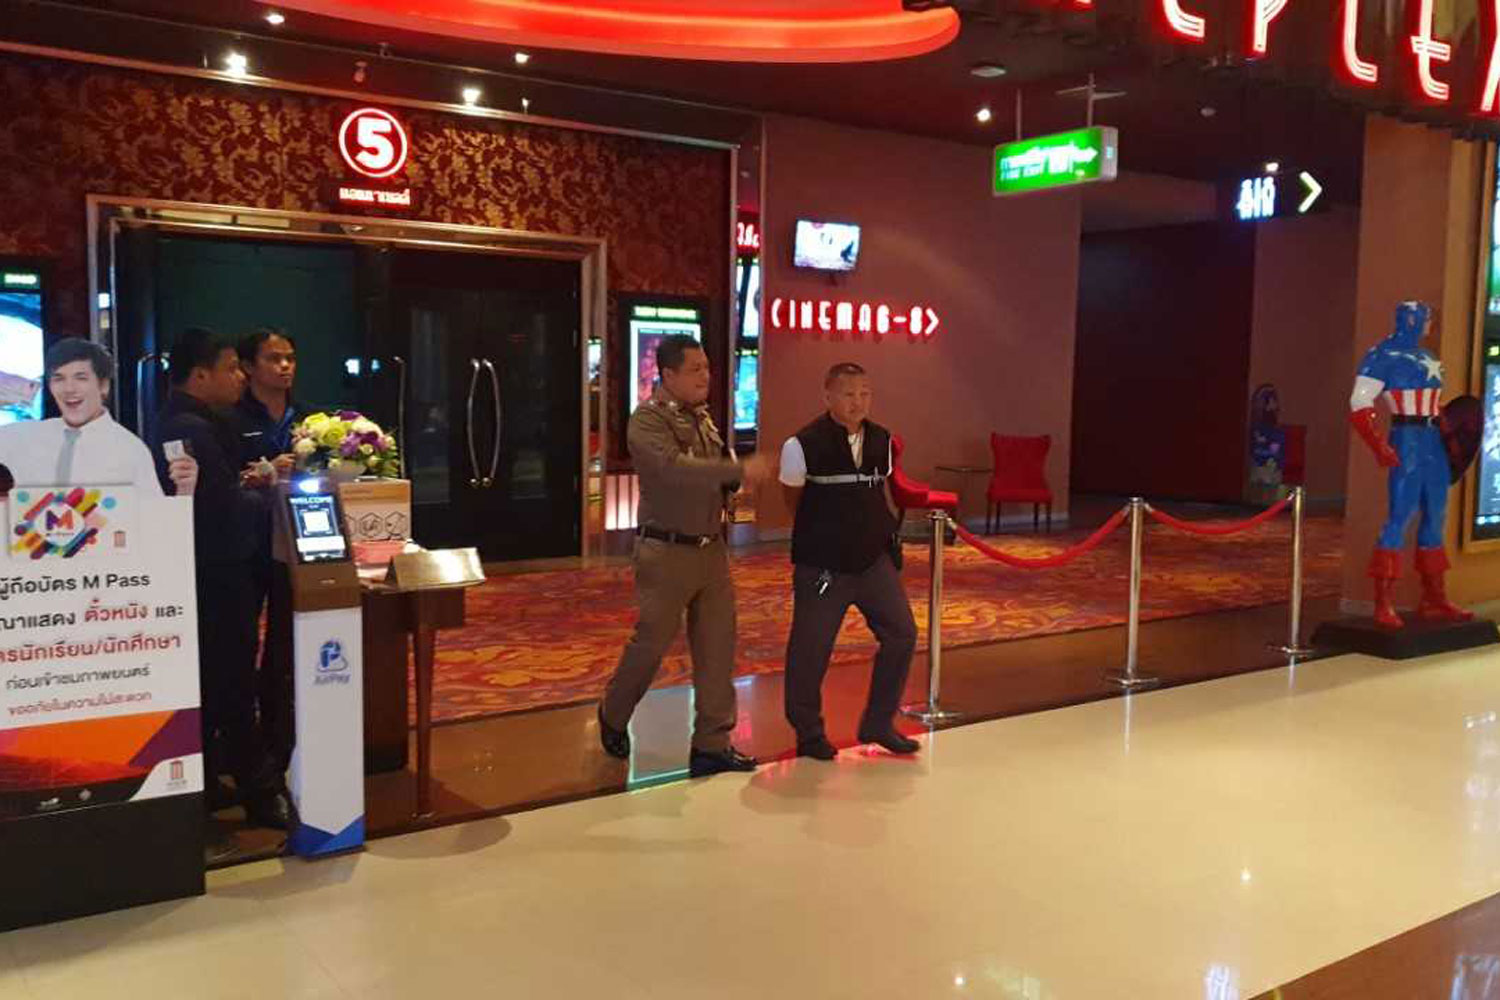 Police at the cinema complex inside The Avenue Pattaya shopping mall after an elderly British man collapsed and died there on Tuesday night. (Photo by Chaiyot Pupattanapong)